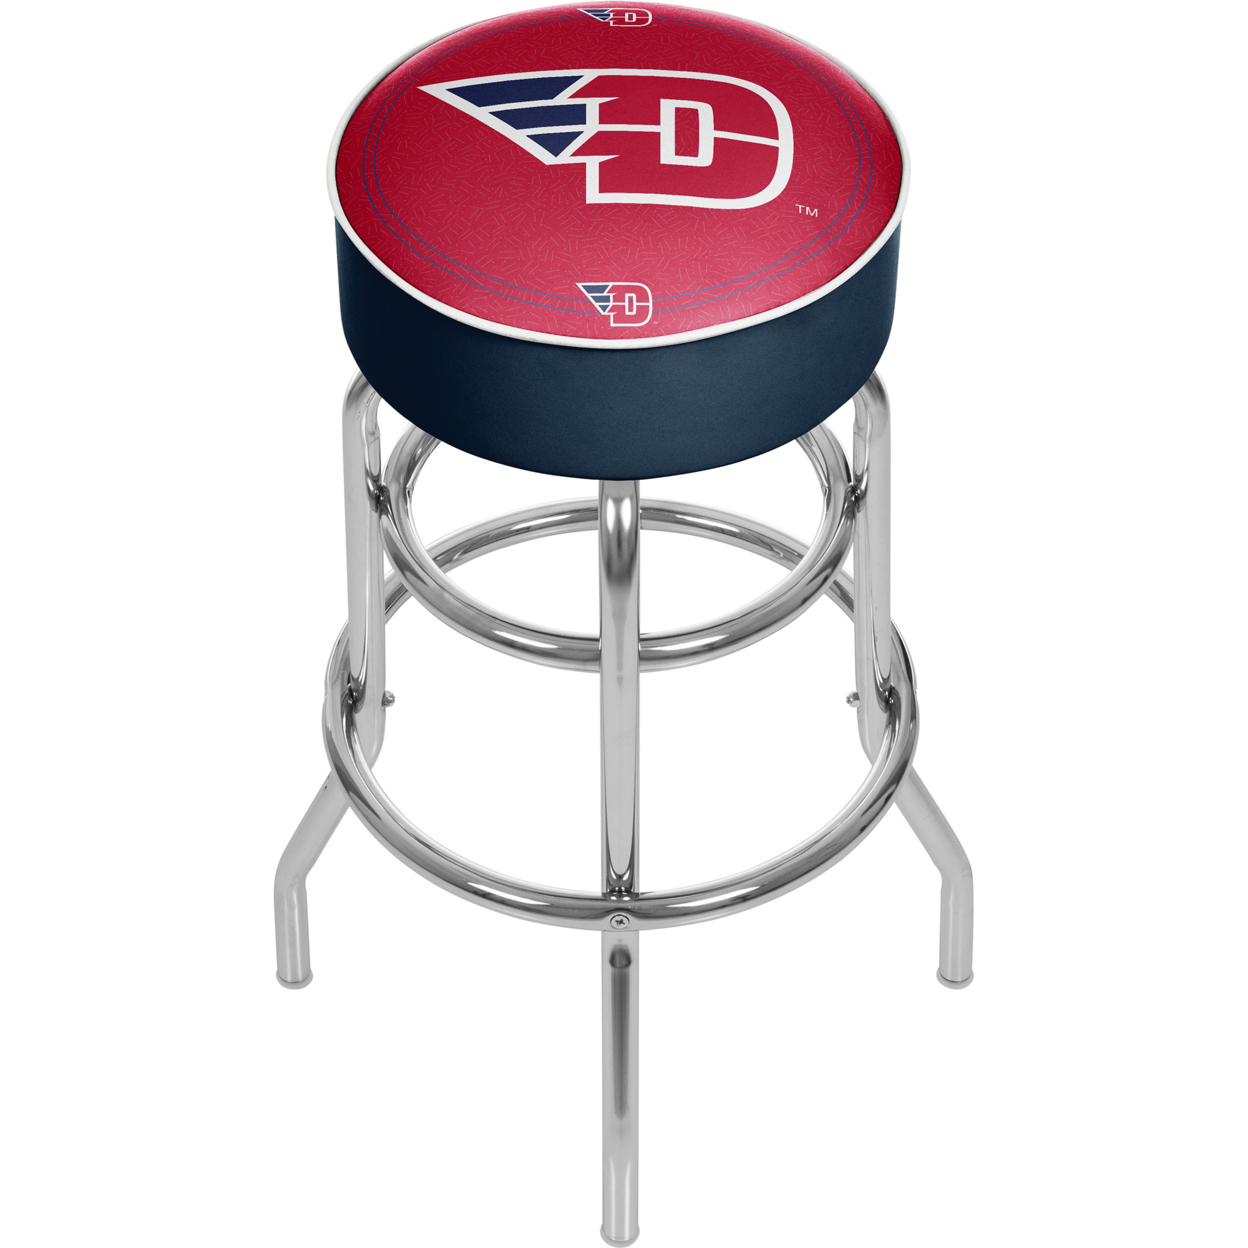 University of Dayton Padded Swivel Bar Stool 30 Inches High